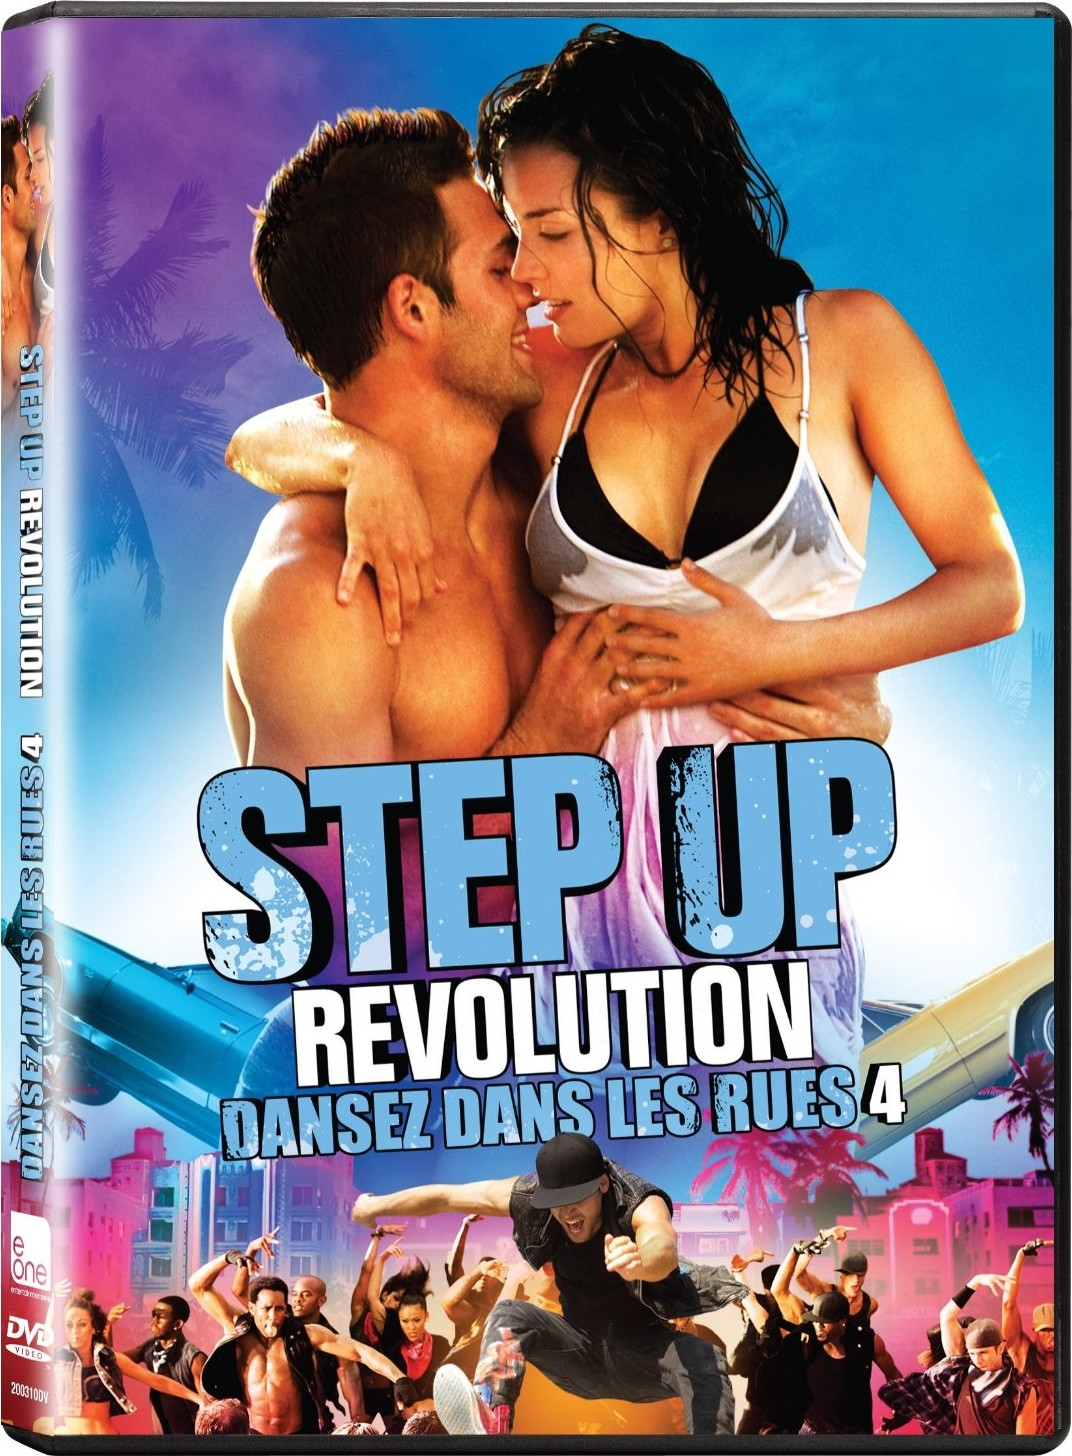 Step Up Revolution Director Scott Speer Arrested for Arson